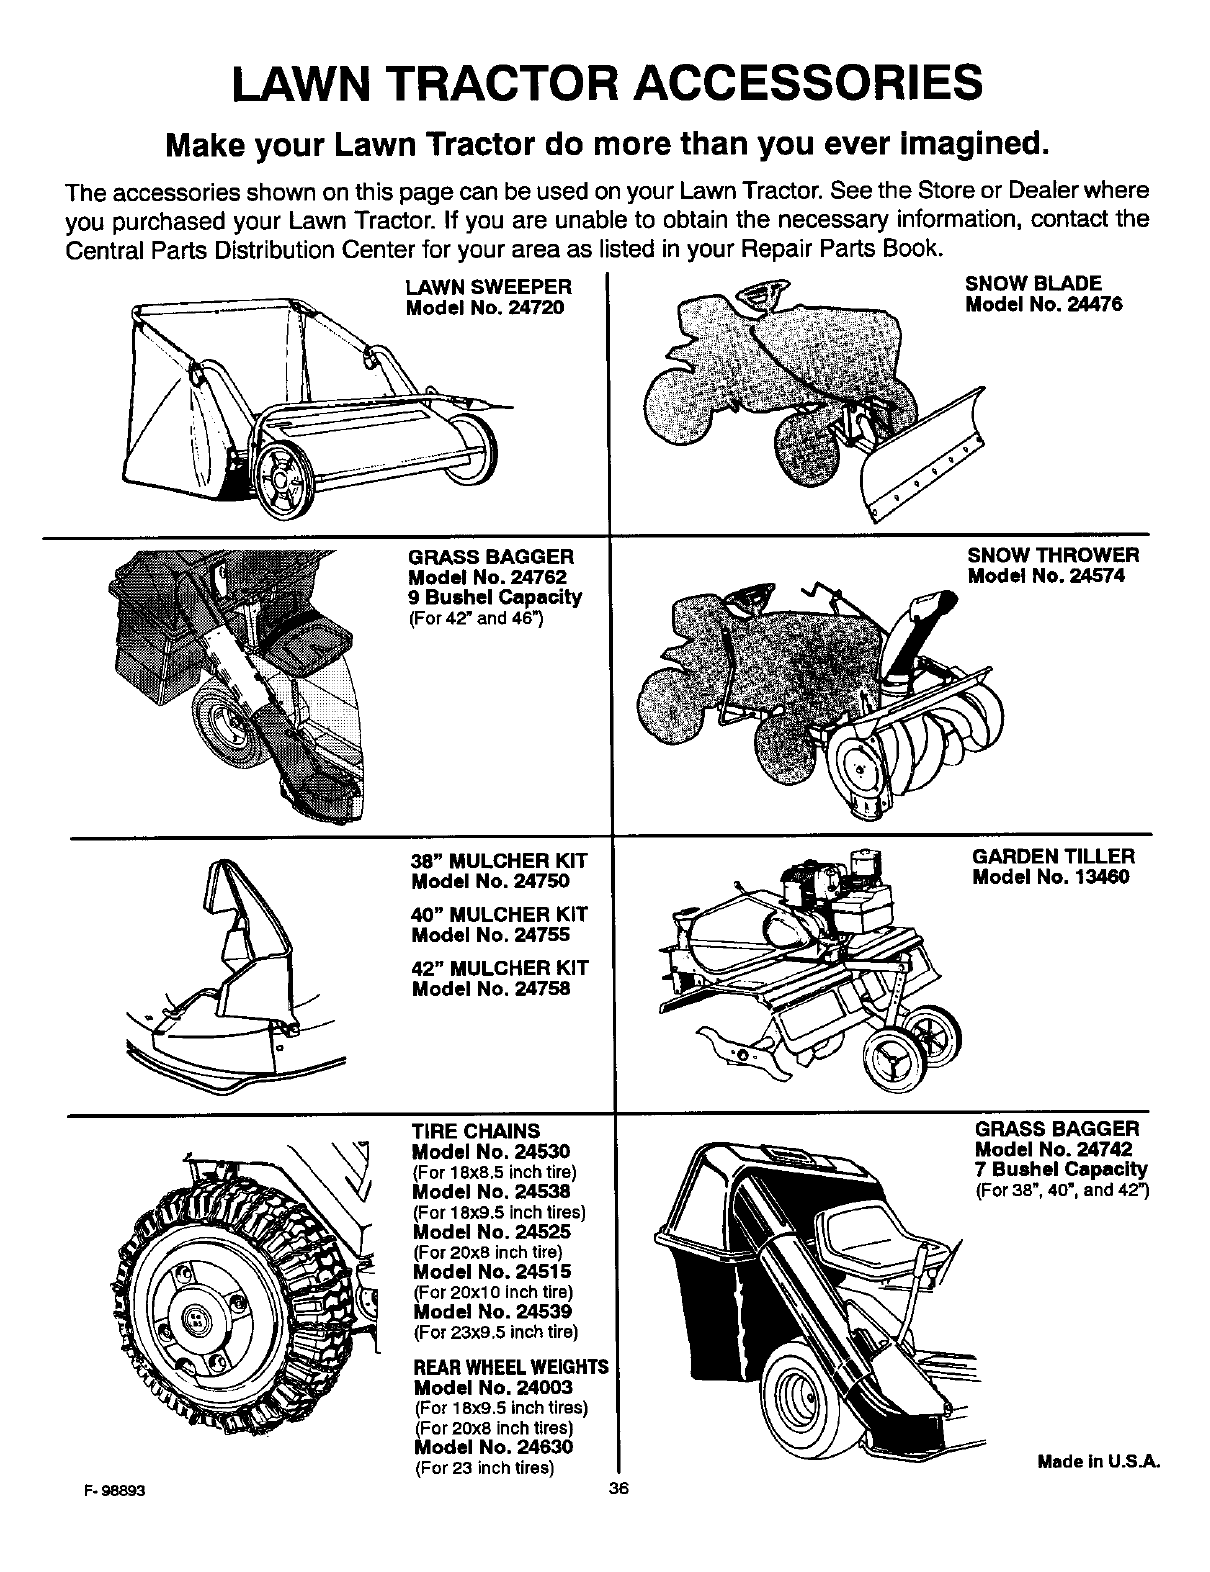 Murray 46569x9a User Manual Tractor Manuals And Guides L0104222 Motion Drive Diagram Parts List For Ridingmowertractor Lawn Accessories